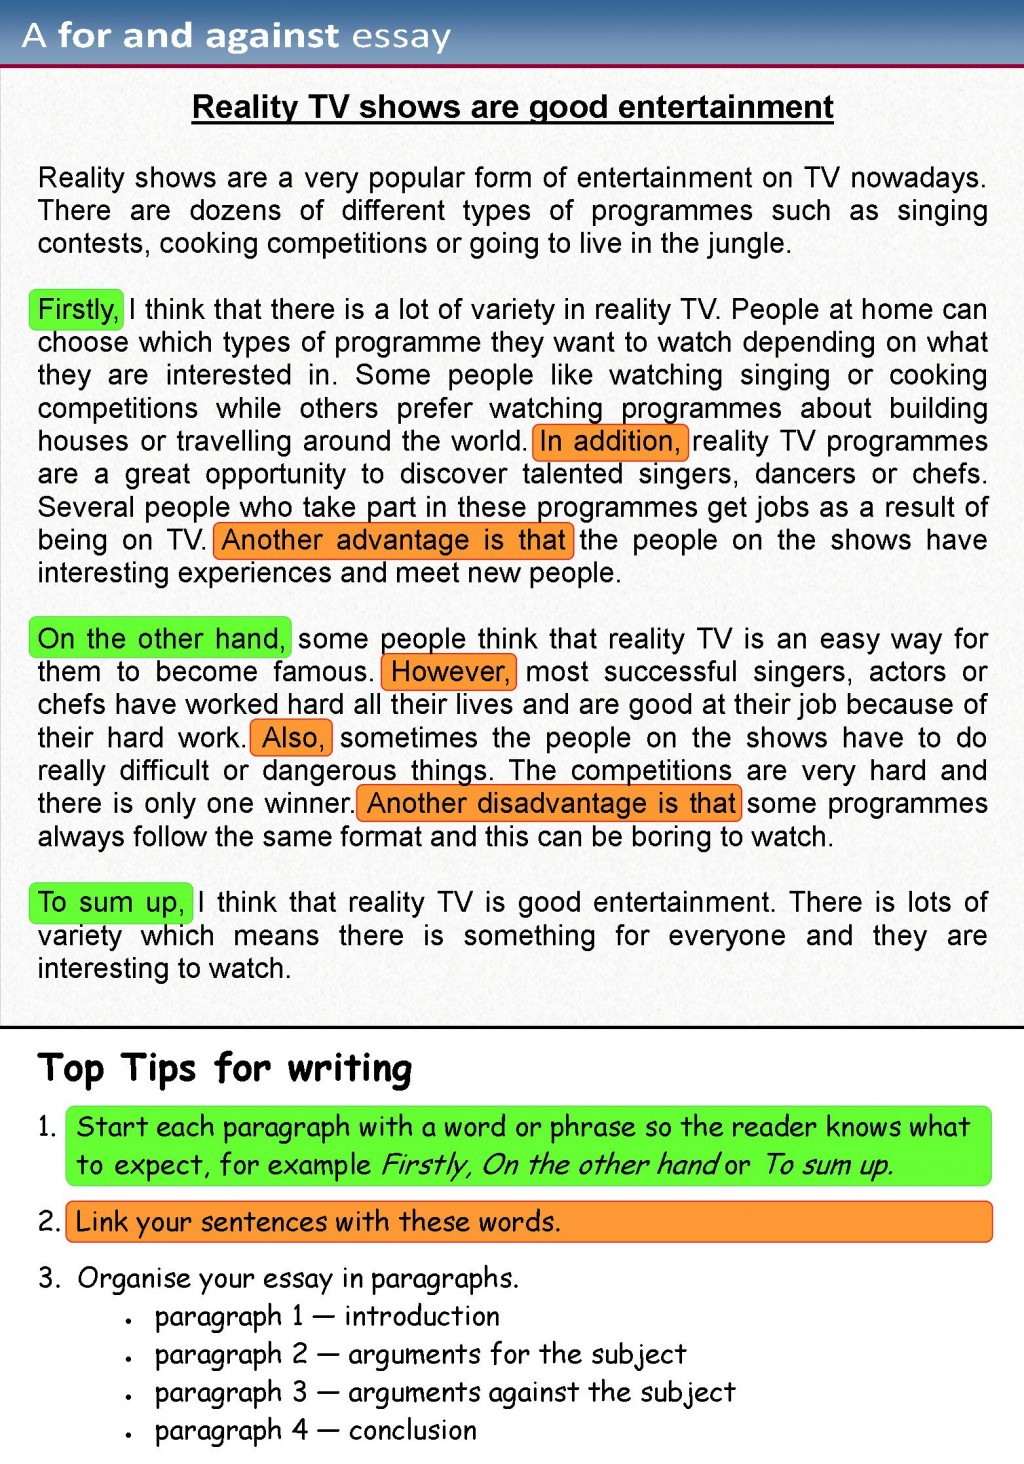 016 For Against Essay 1 Funny Essays Stupendous Topics High School Students About Large